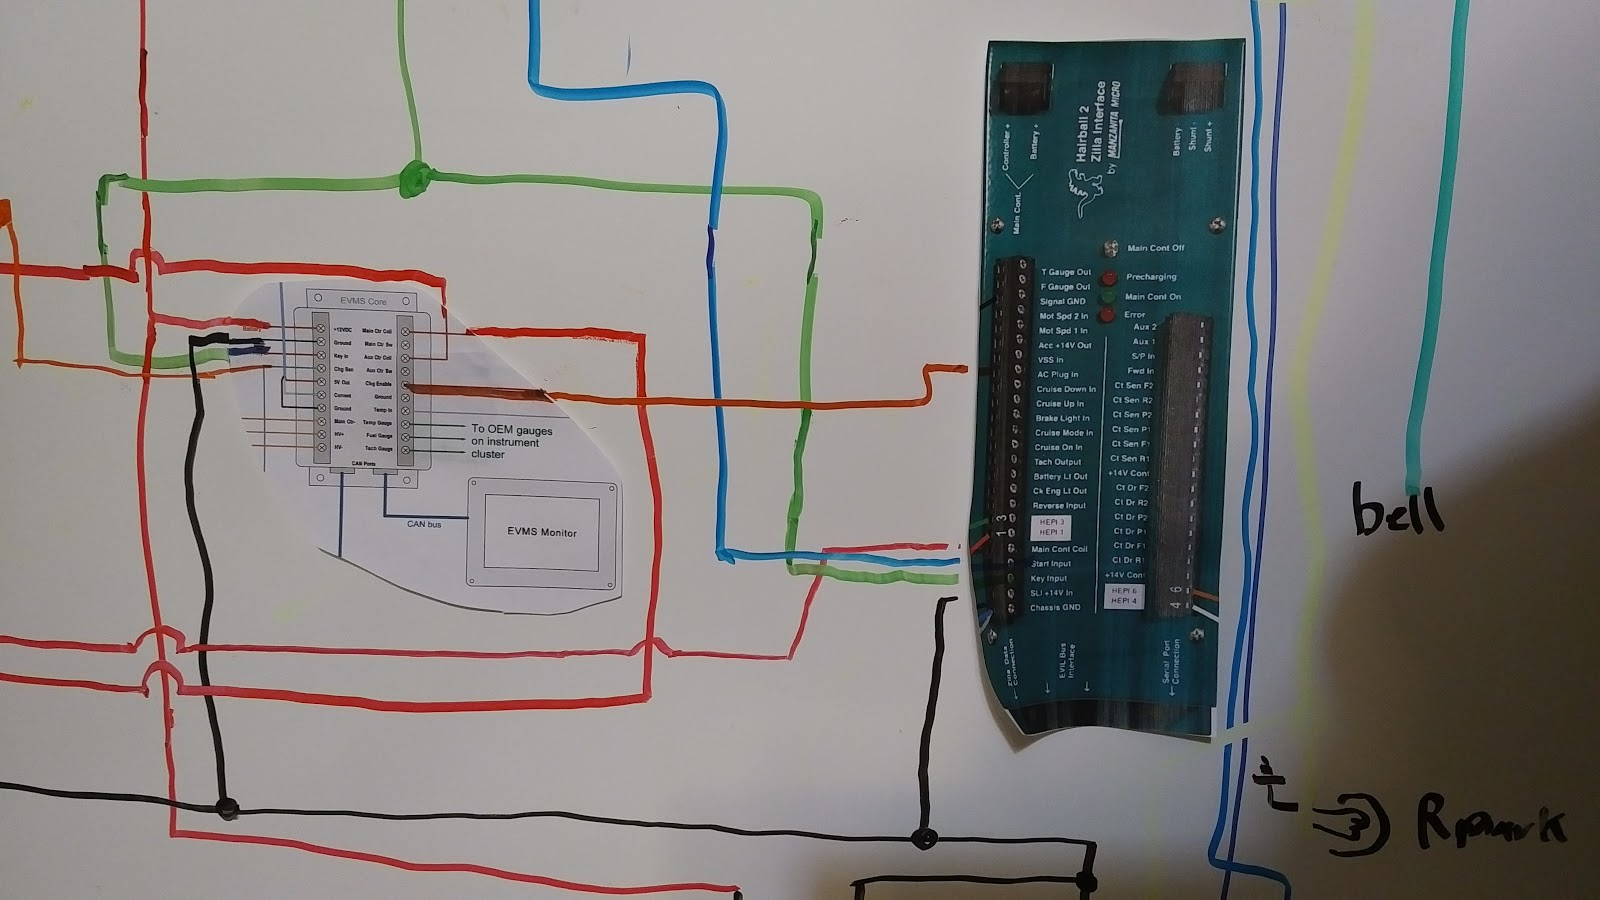 Making Things Work Bmw Wiring Diagram Spaghetti I Dunno Well Just Have To See Where This Takes Me Think Im Going Commit Weekly Writings Dont Want Jinx Myself And Wonder Off For